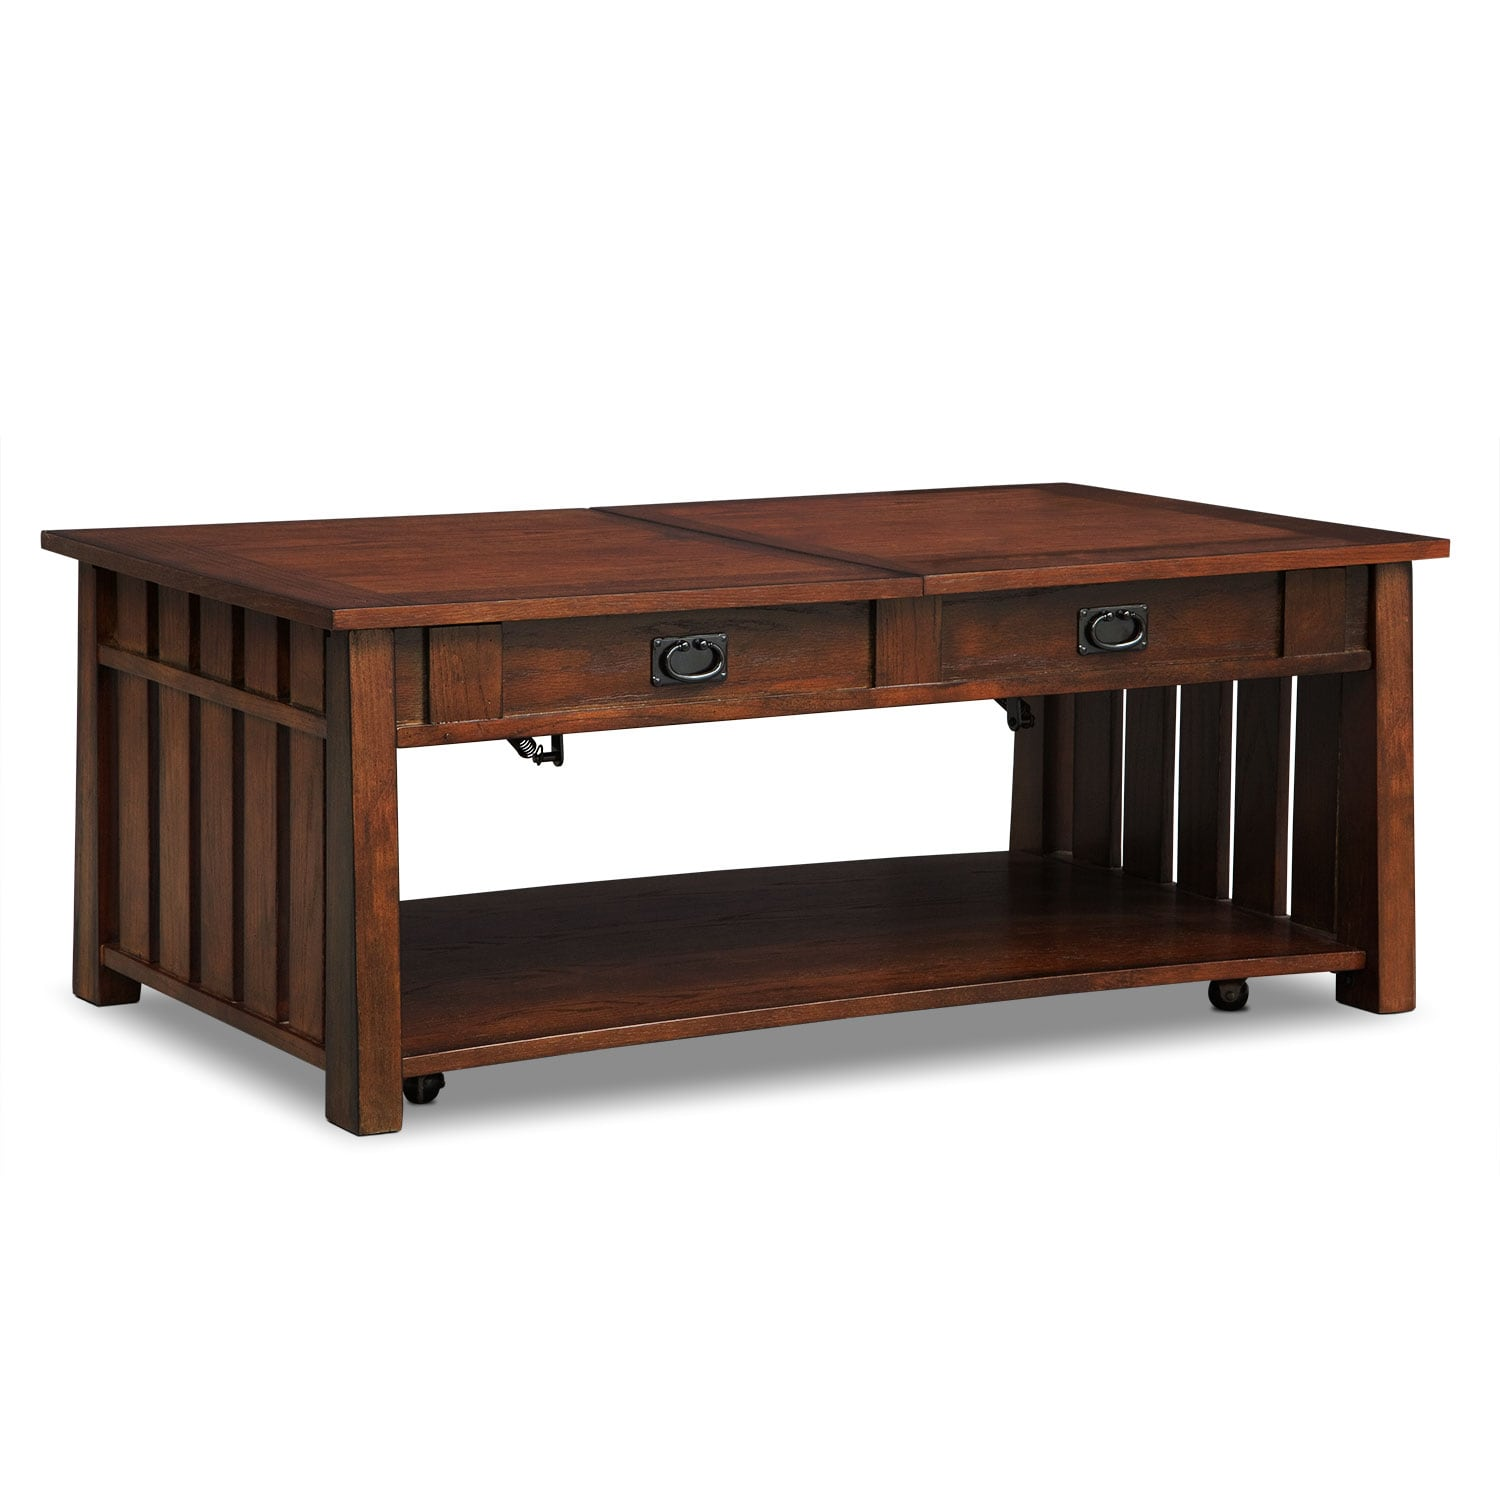 Tribute Lift-Top Cocktail Table - Cherry